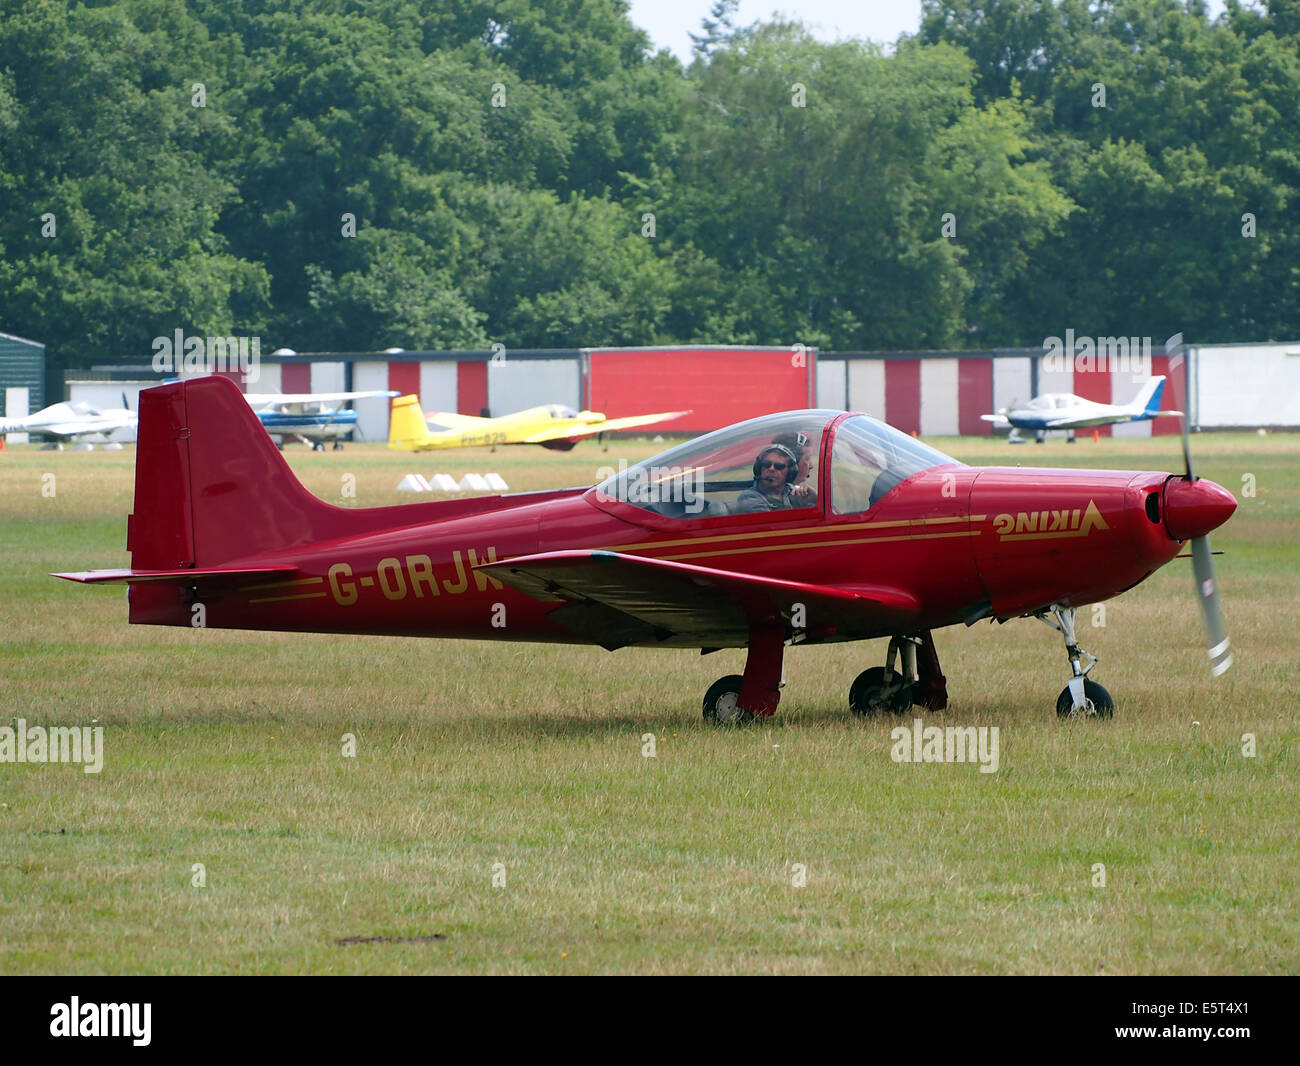 G-ORJW Laverda F8L Falco IV , takeoff from Hilversum Airport (ICAO EHHV), photo2 - Stock Image